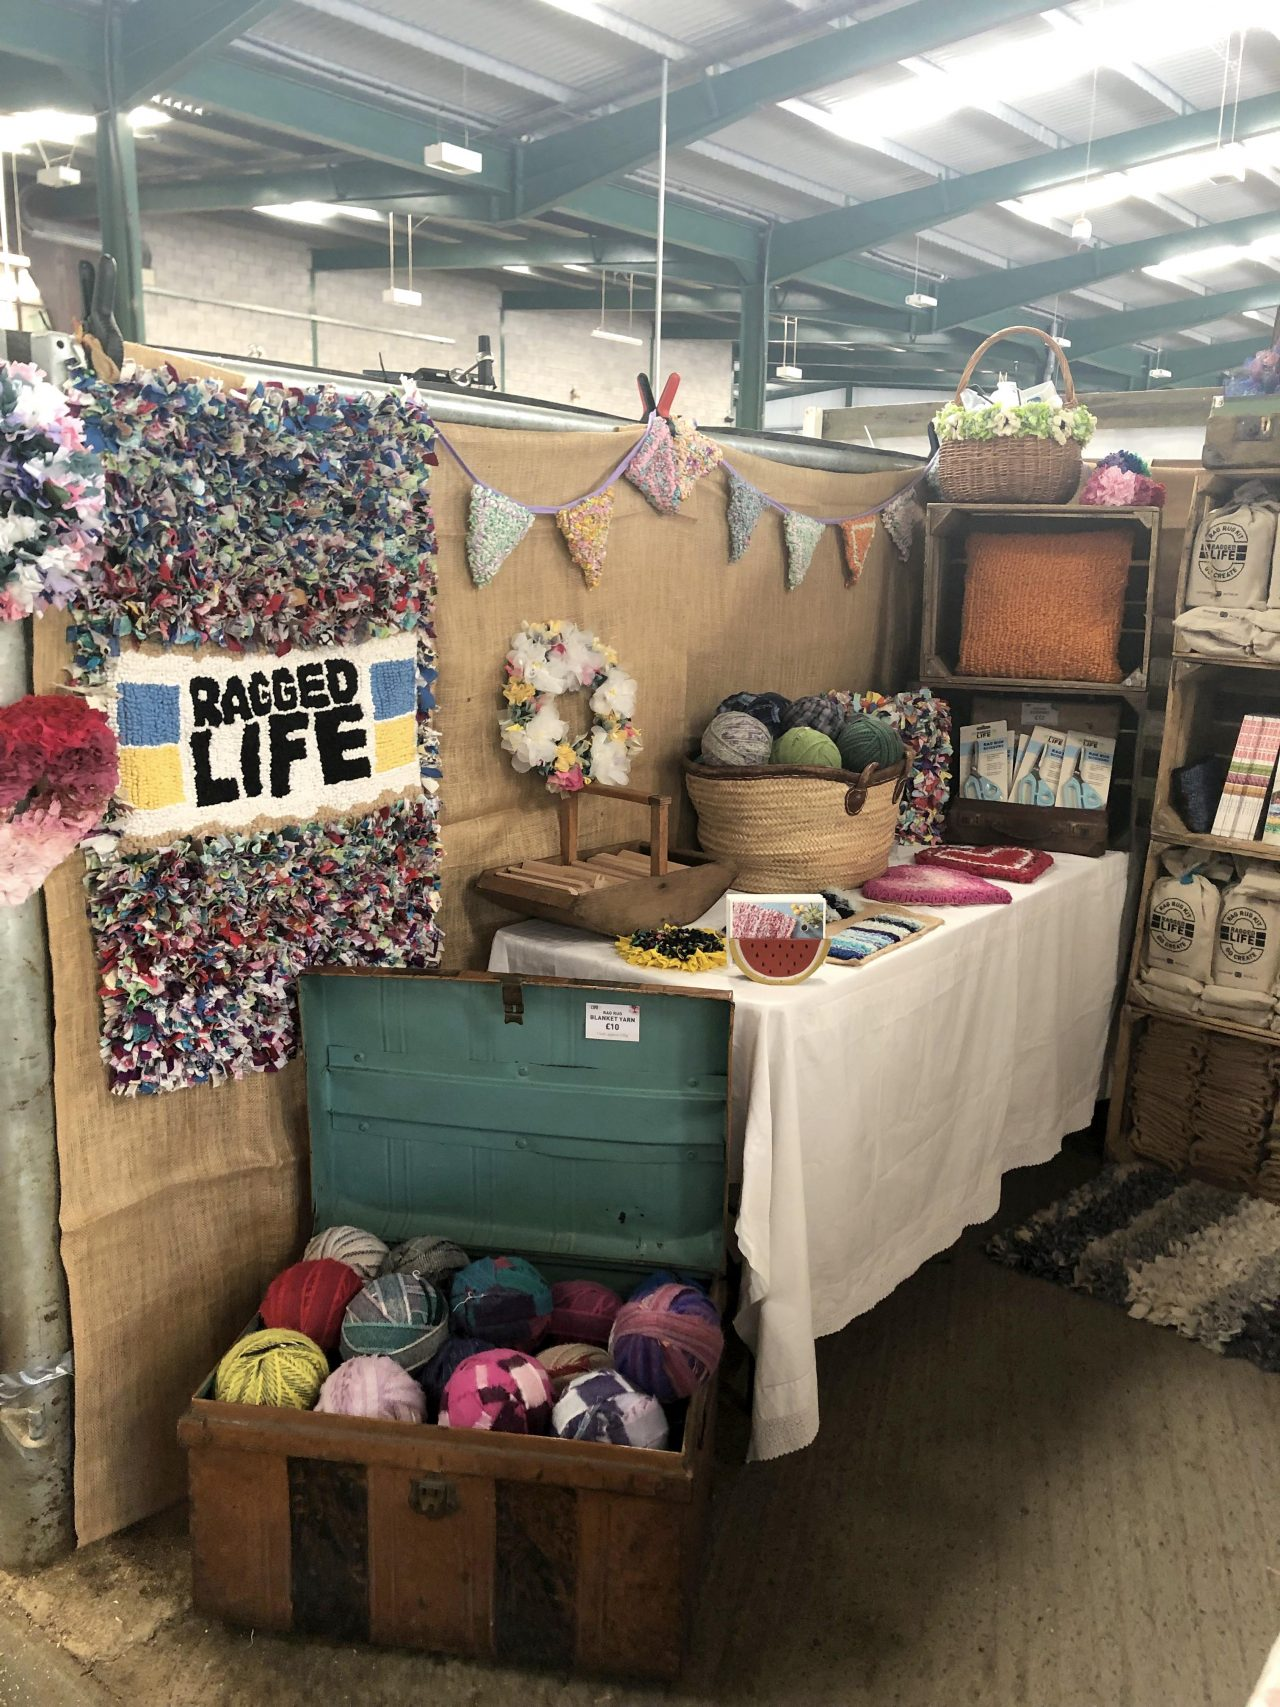 Ragged Life rag rug stand at Woolfest 2019 in Cockermouth, Cumbria festival